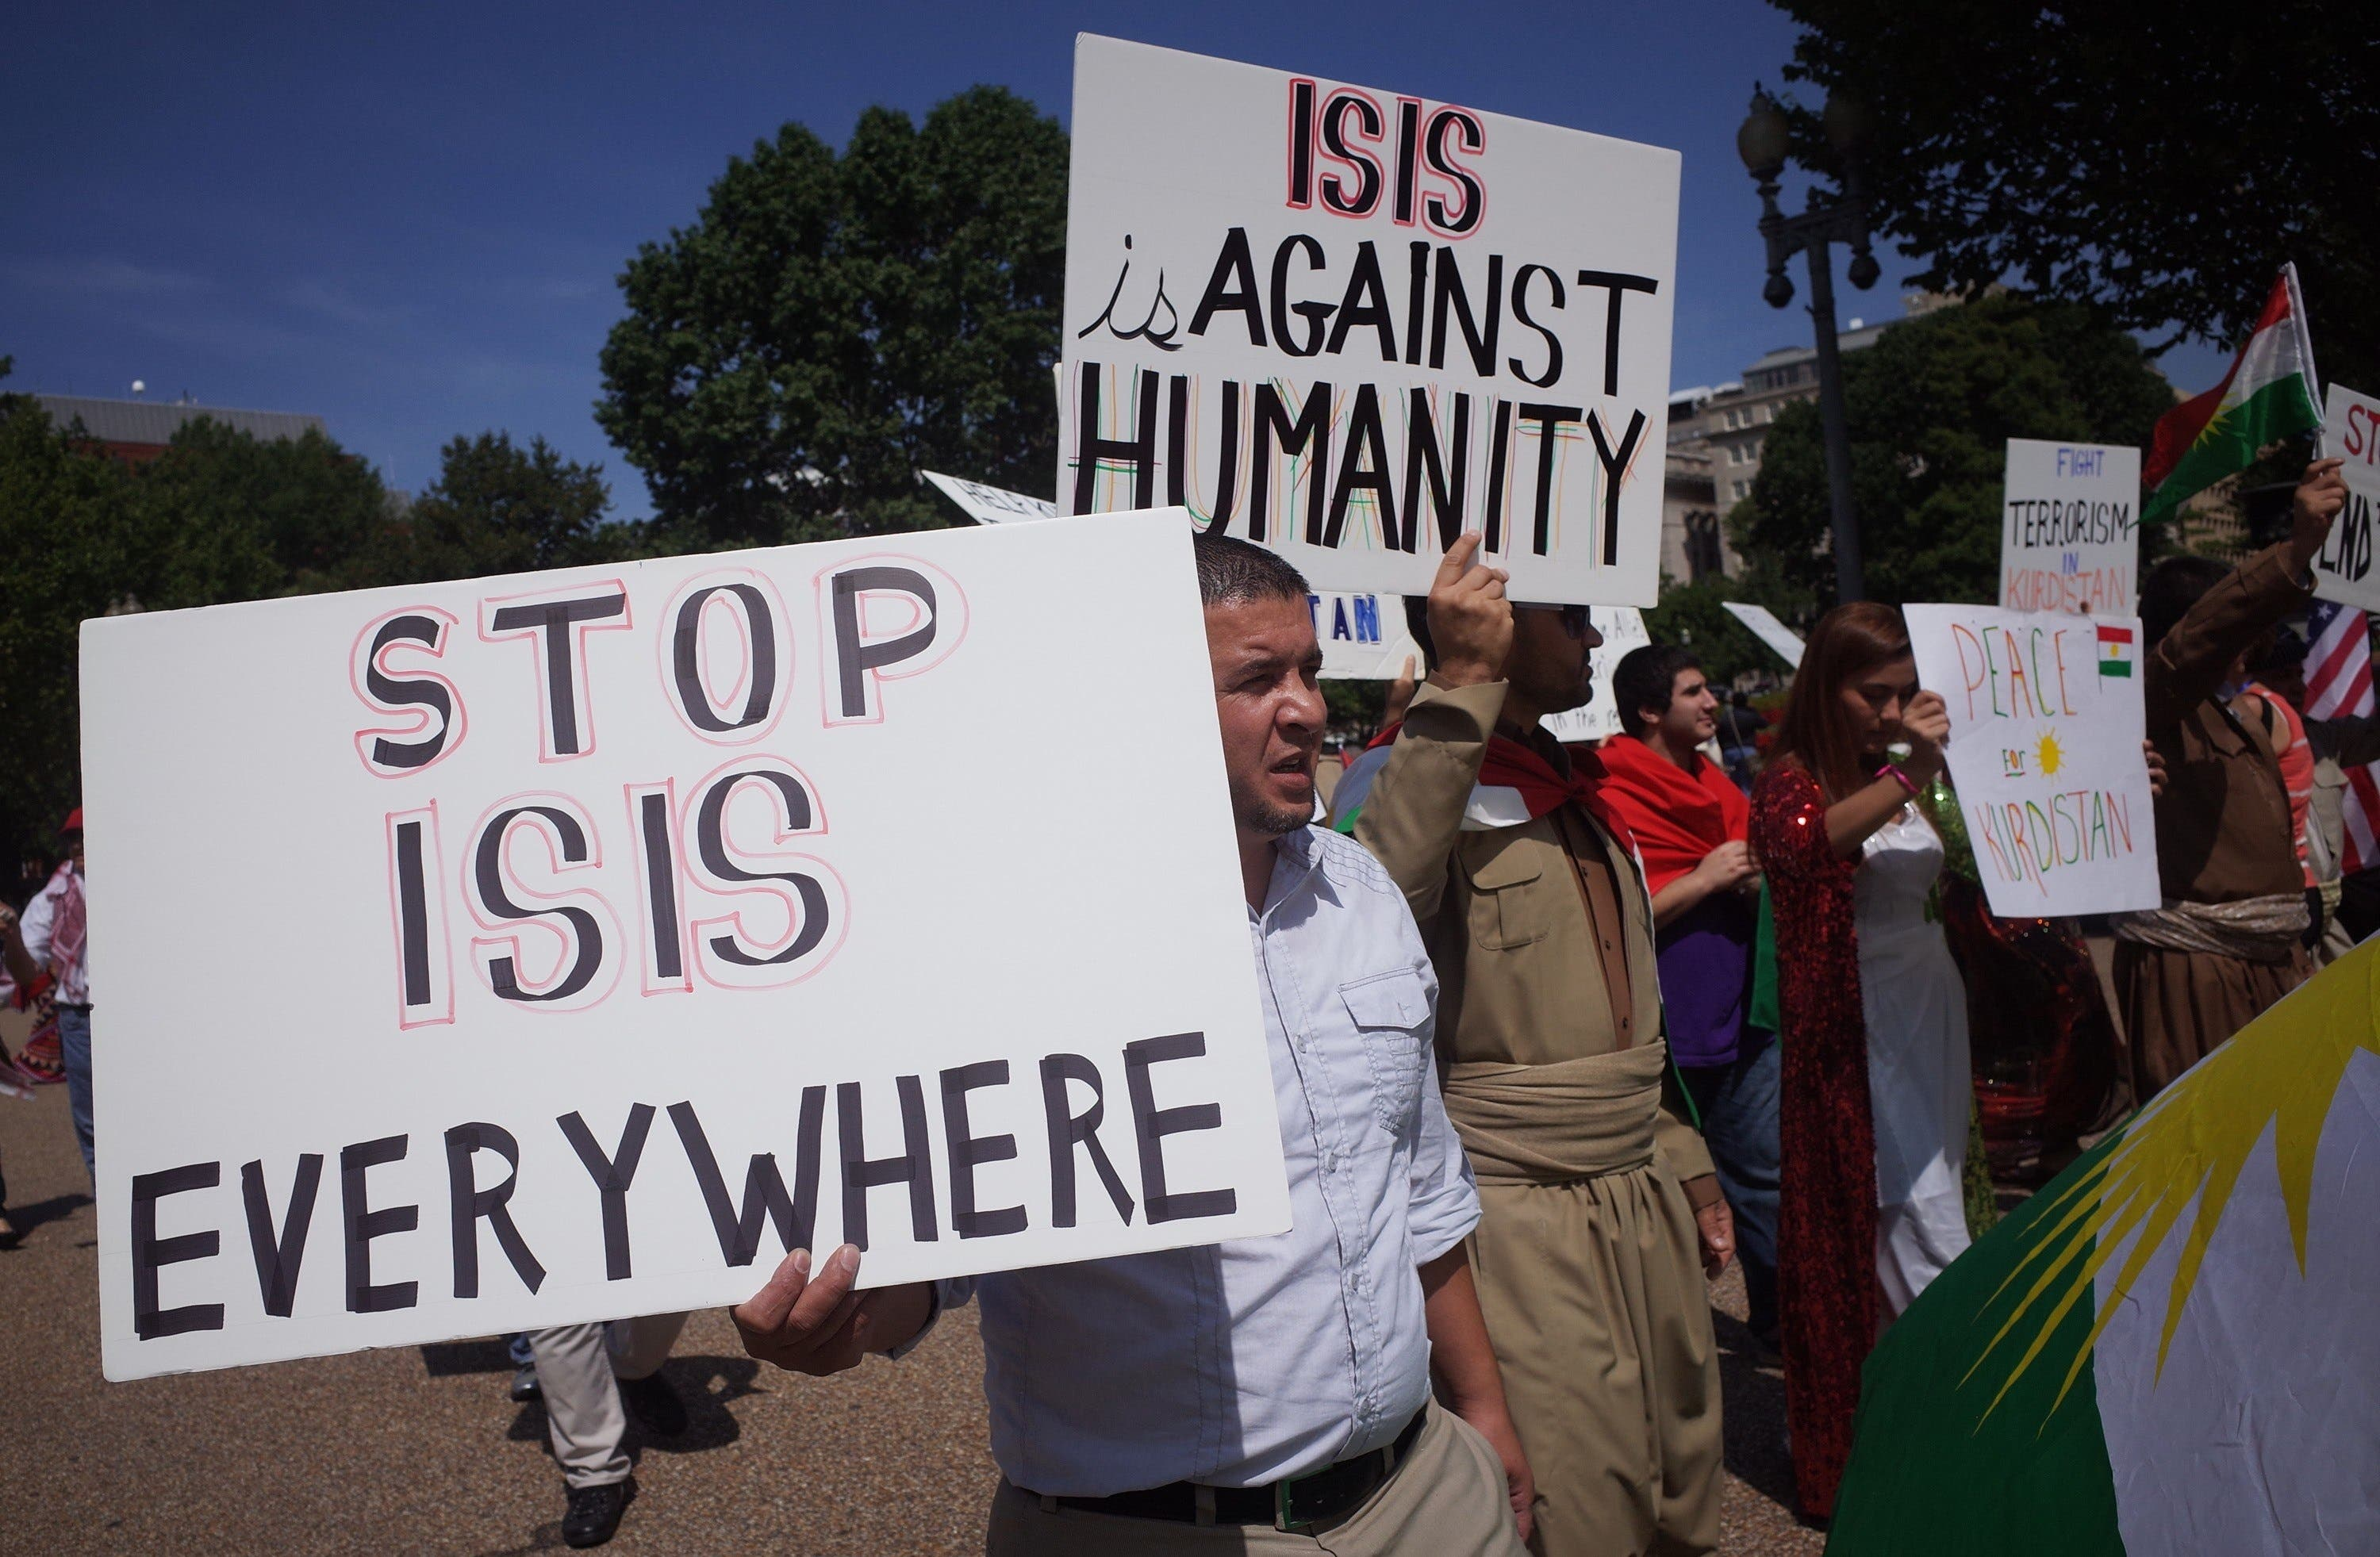 Protests against ISIS in U.S. and France